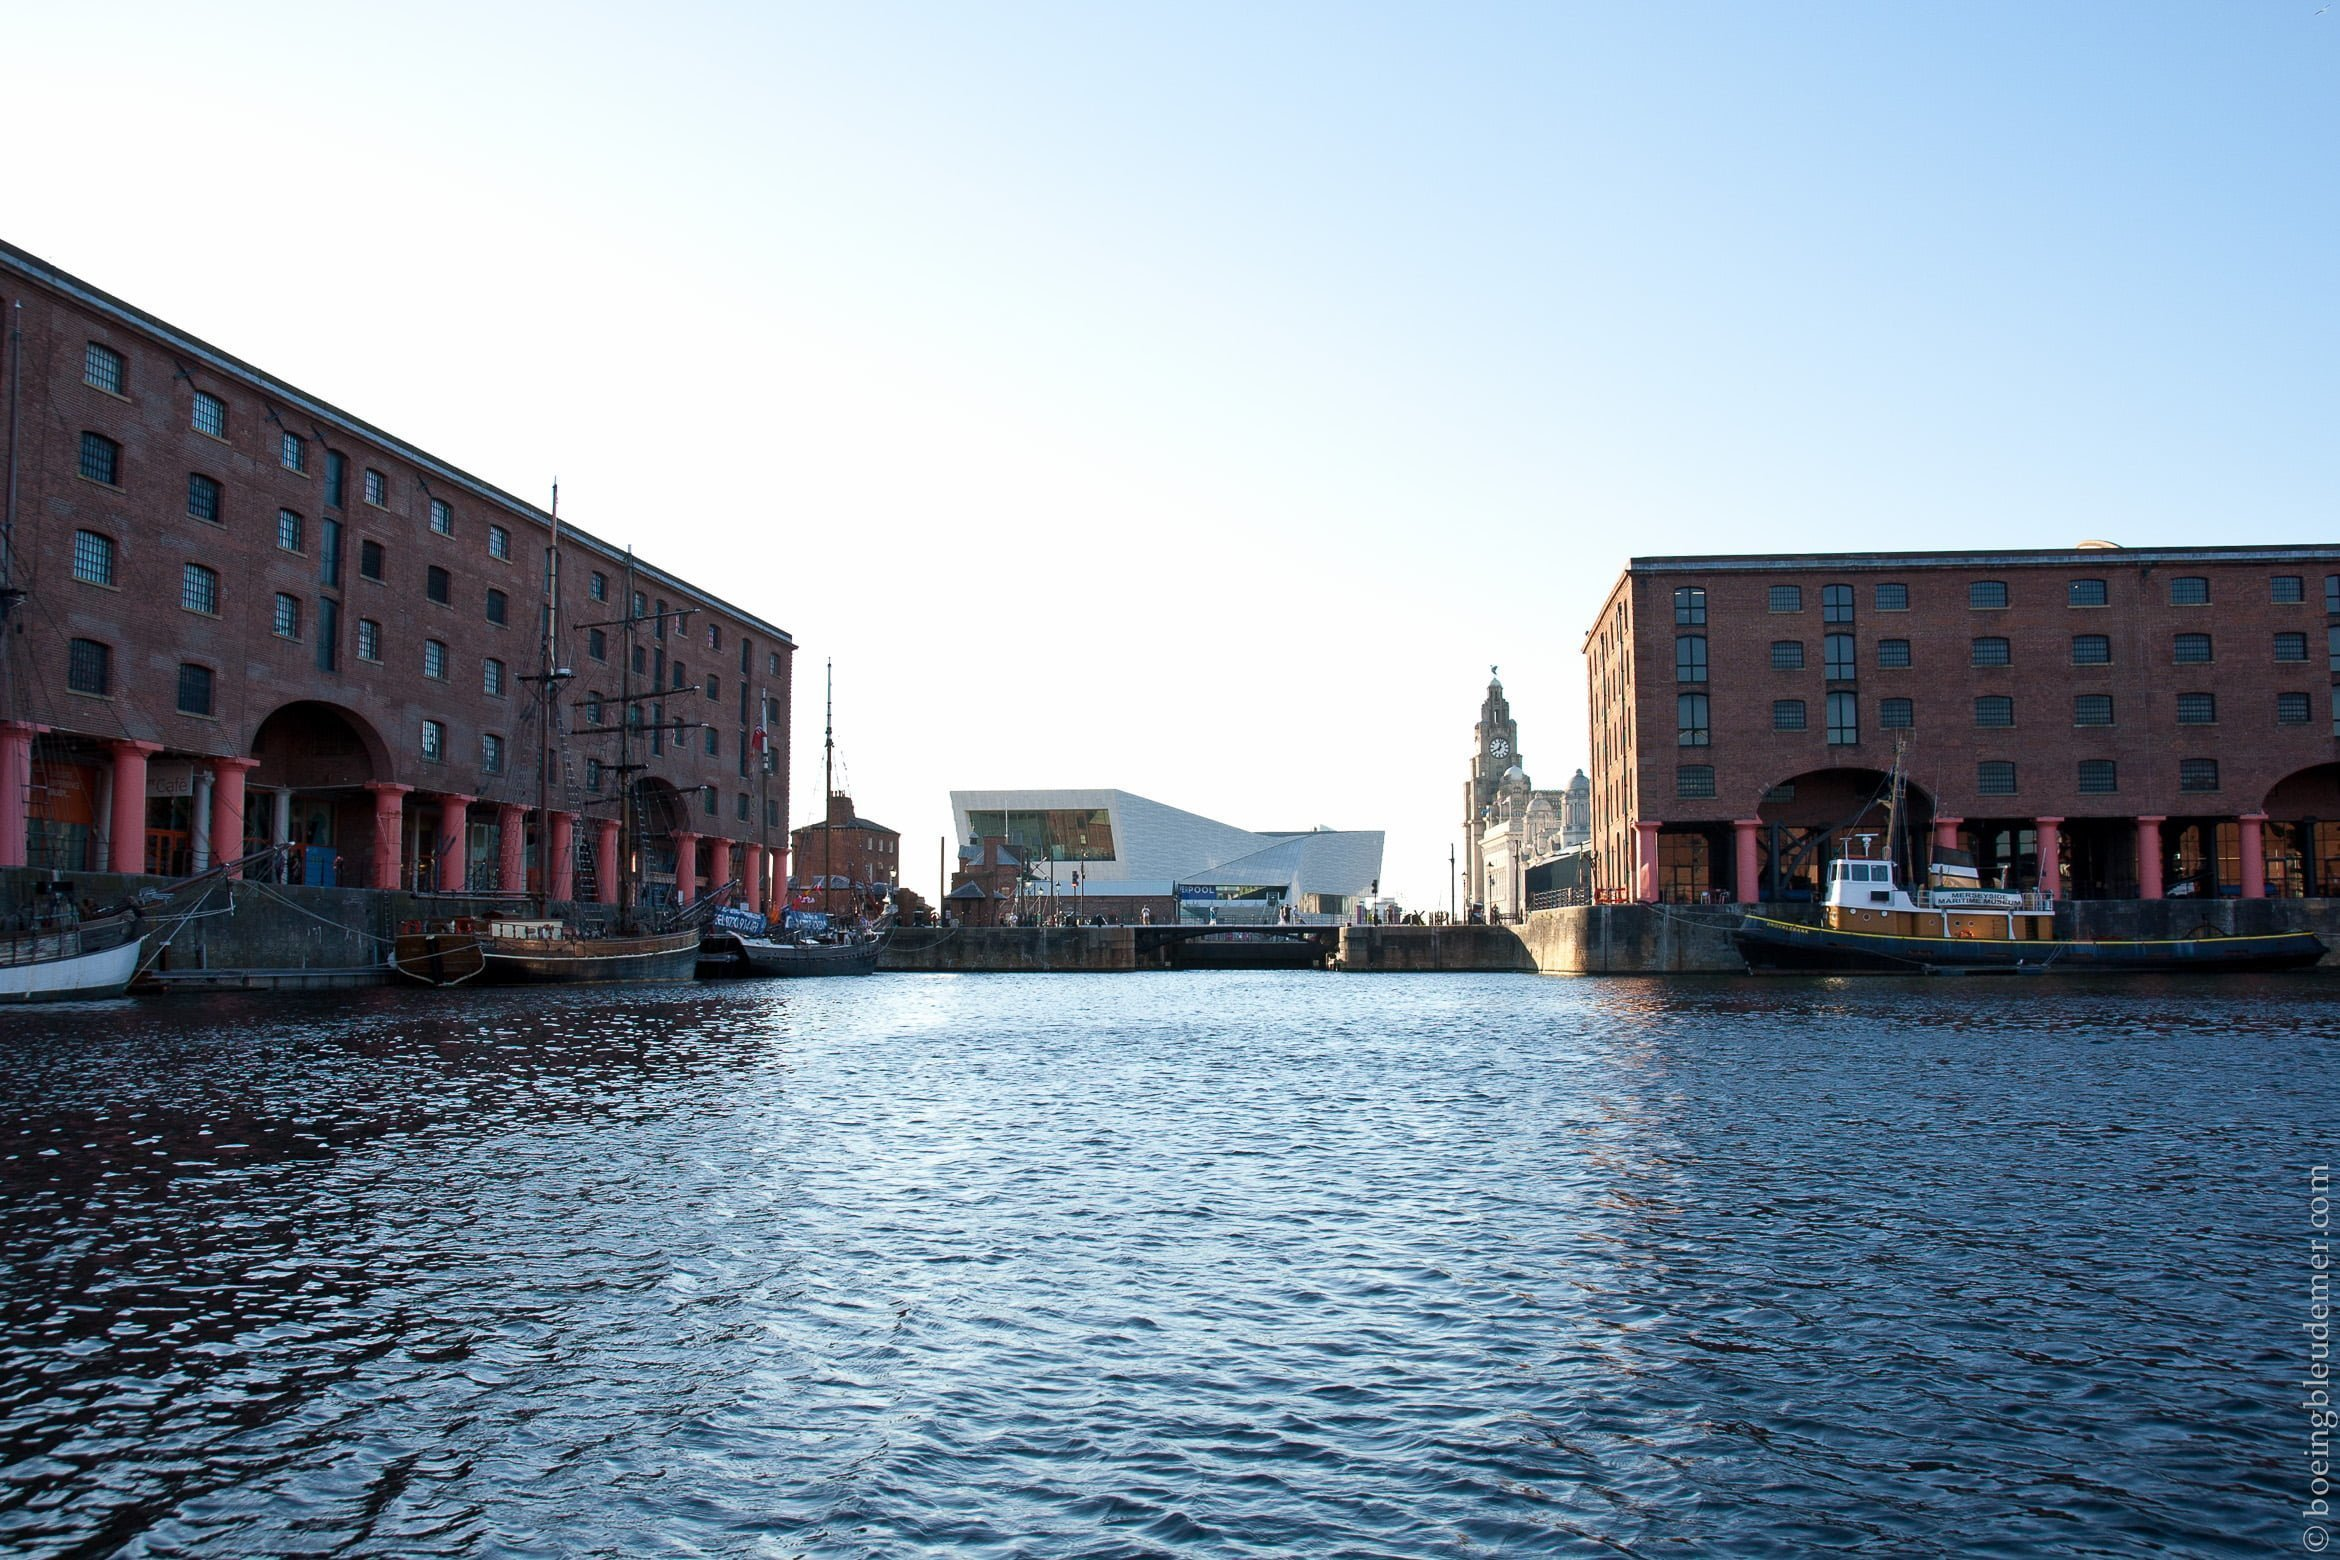 Albert Docks à Liverpool